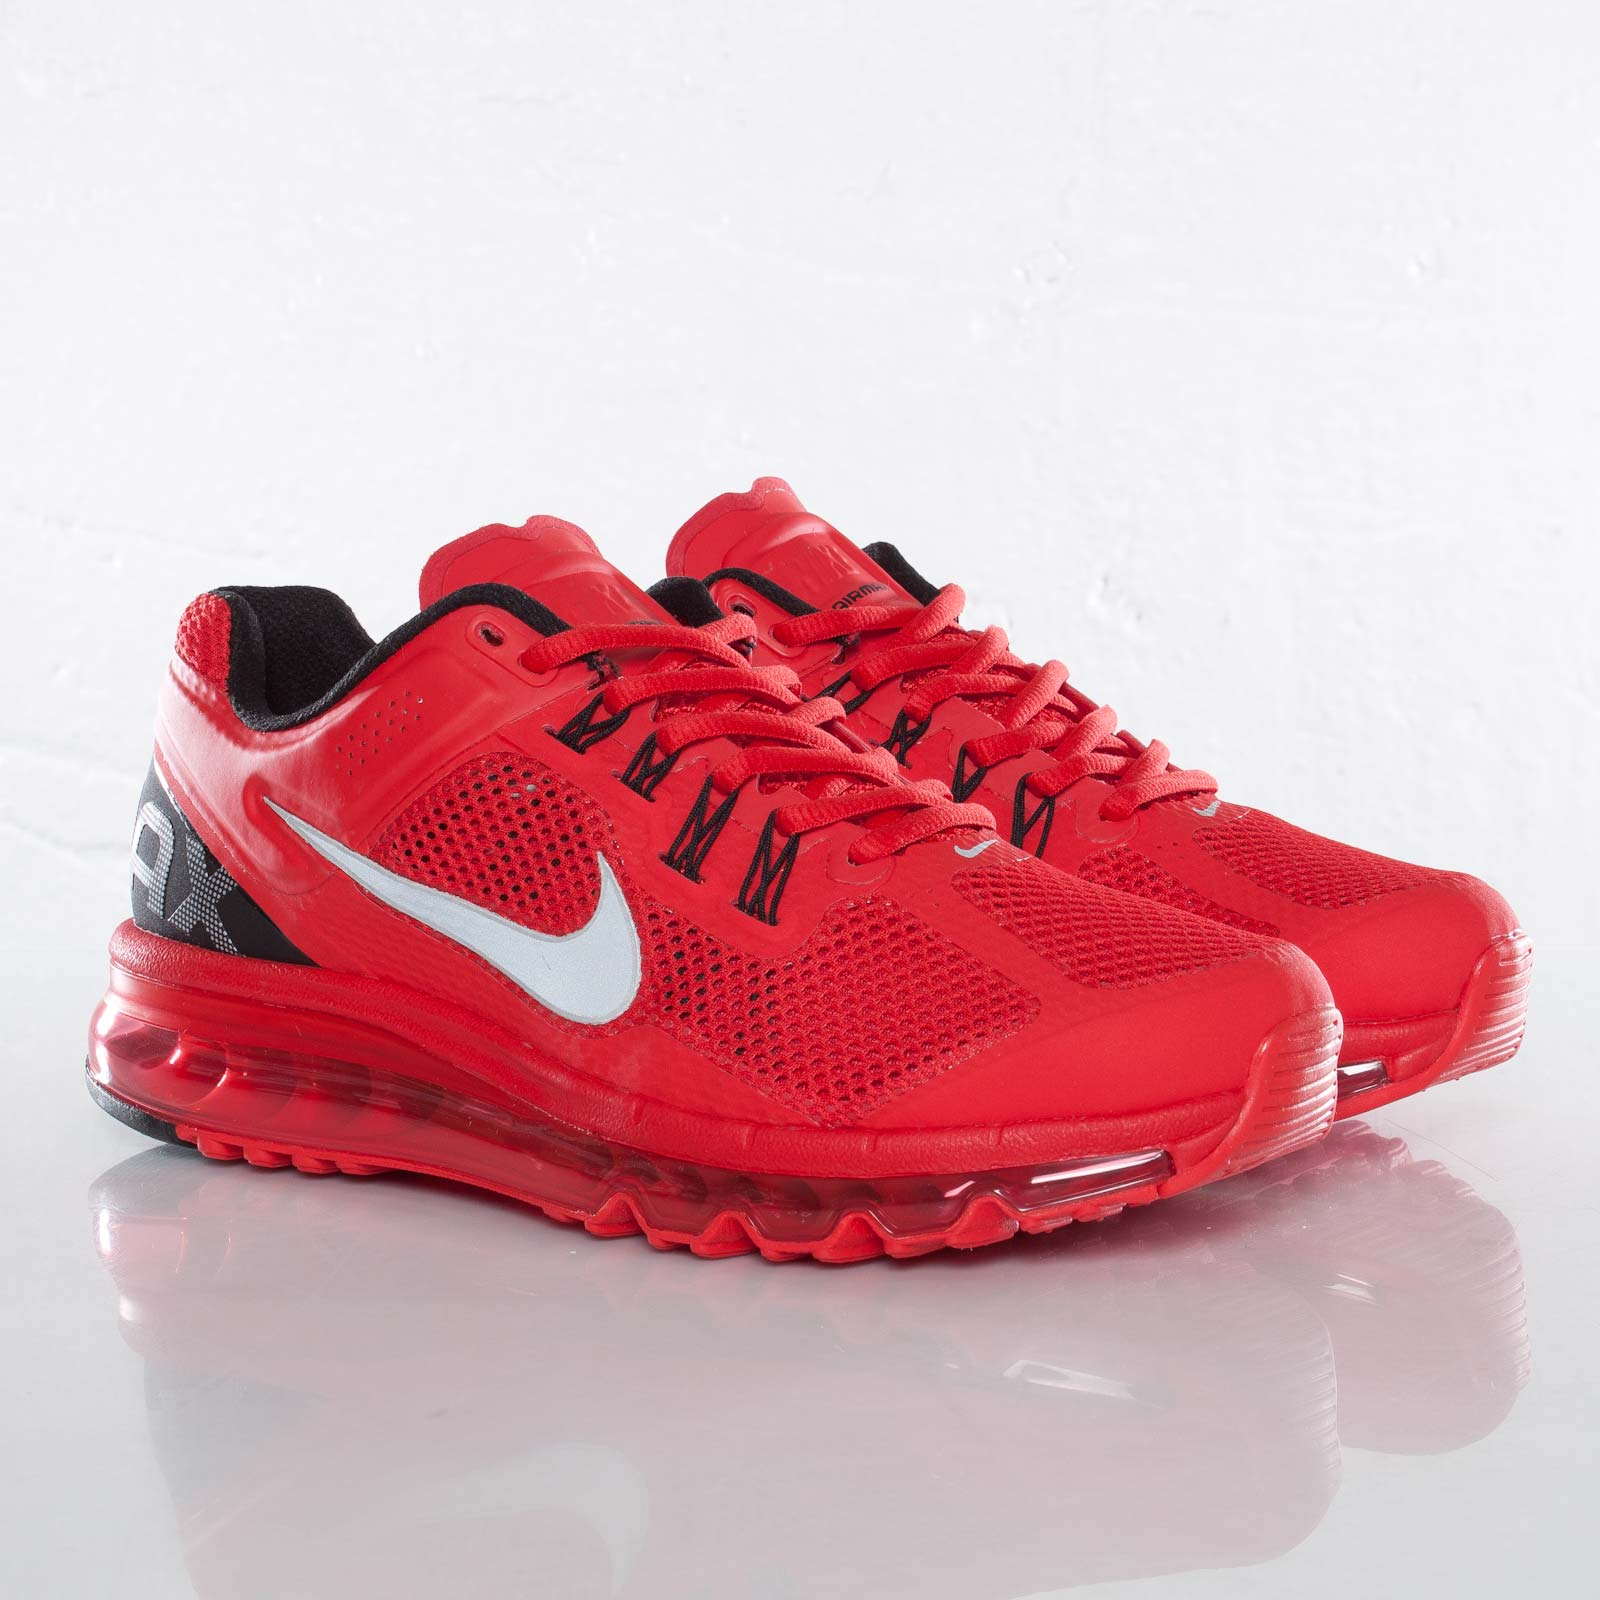 d46b3e3e779bf0 Nike Air Max+ 2013 - 554886-600 - Sneakersnstuff | sneakers ...